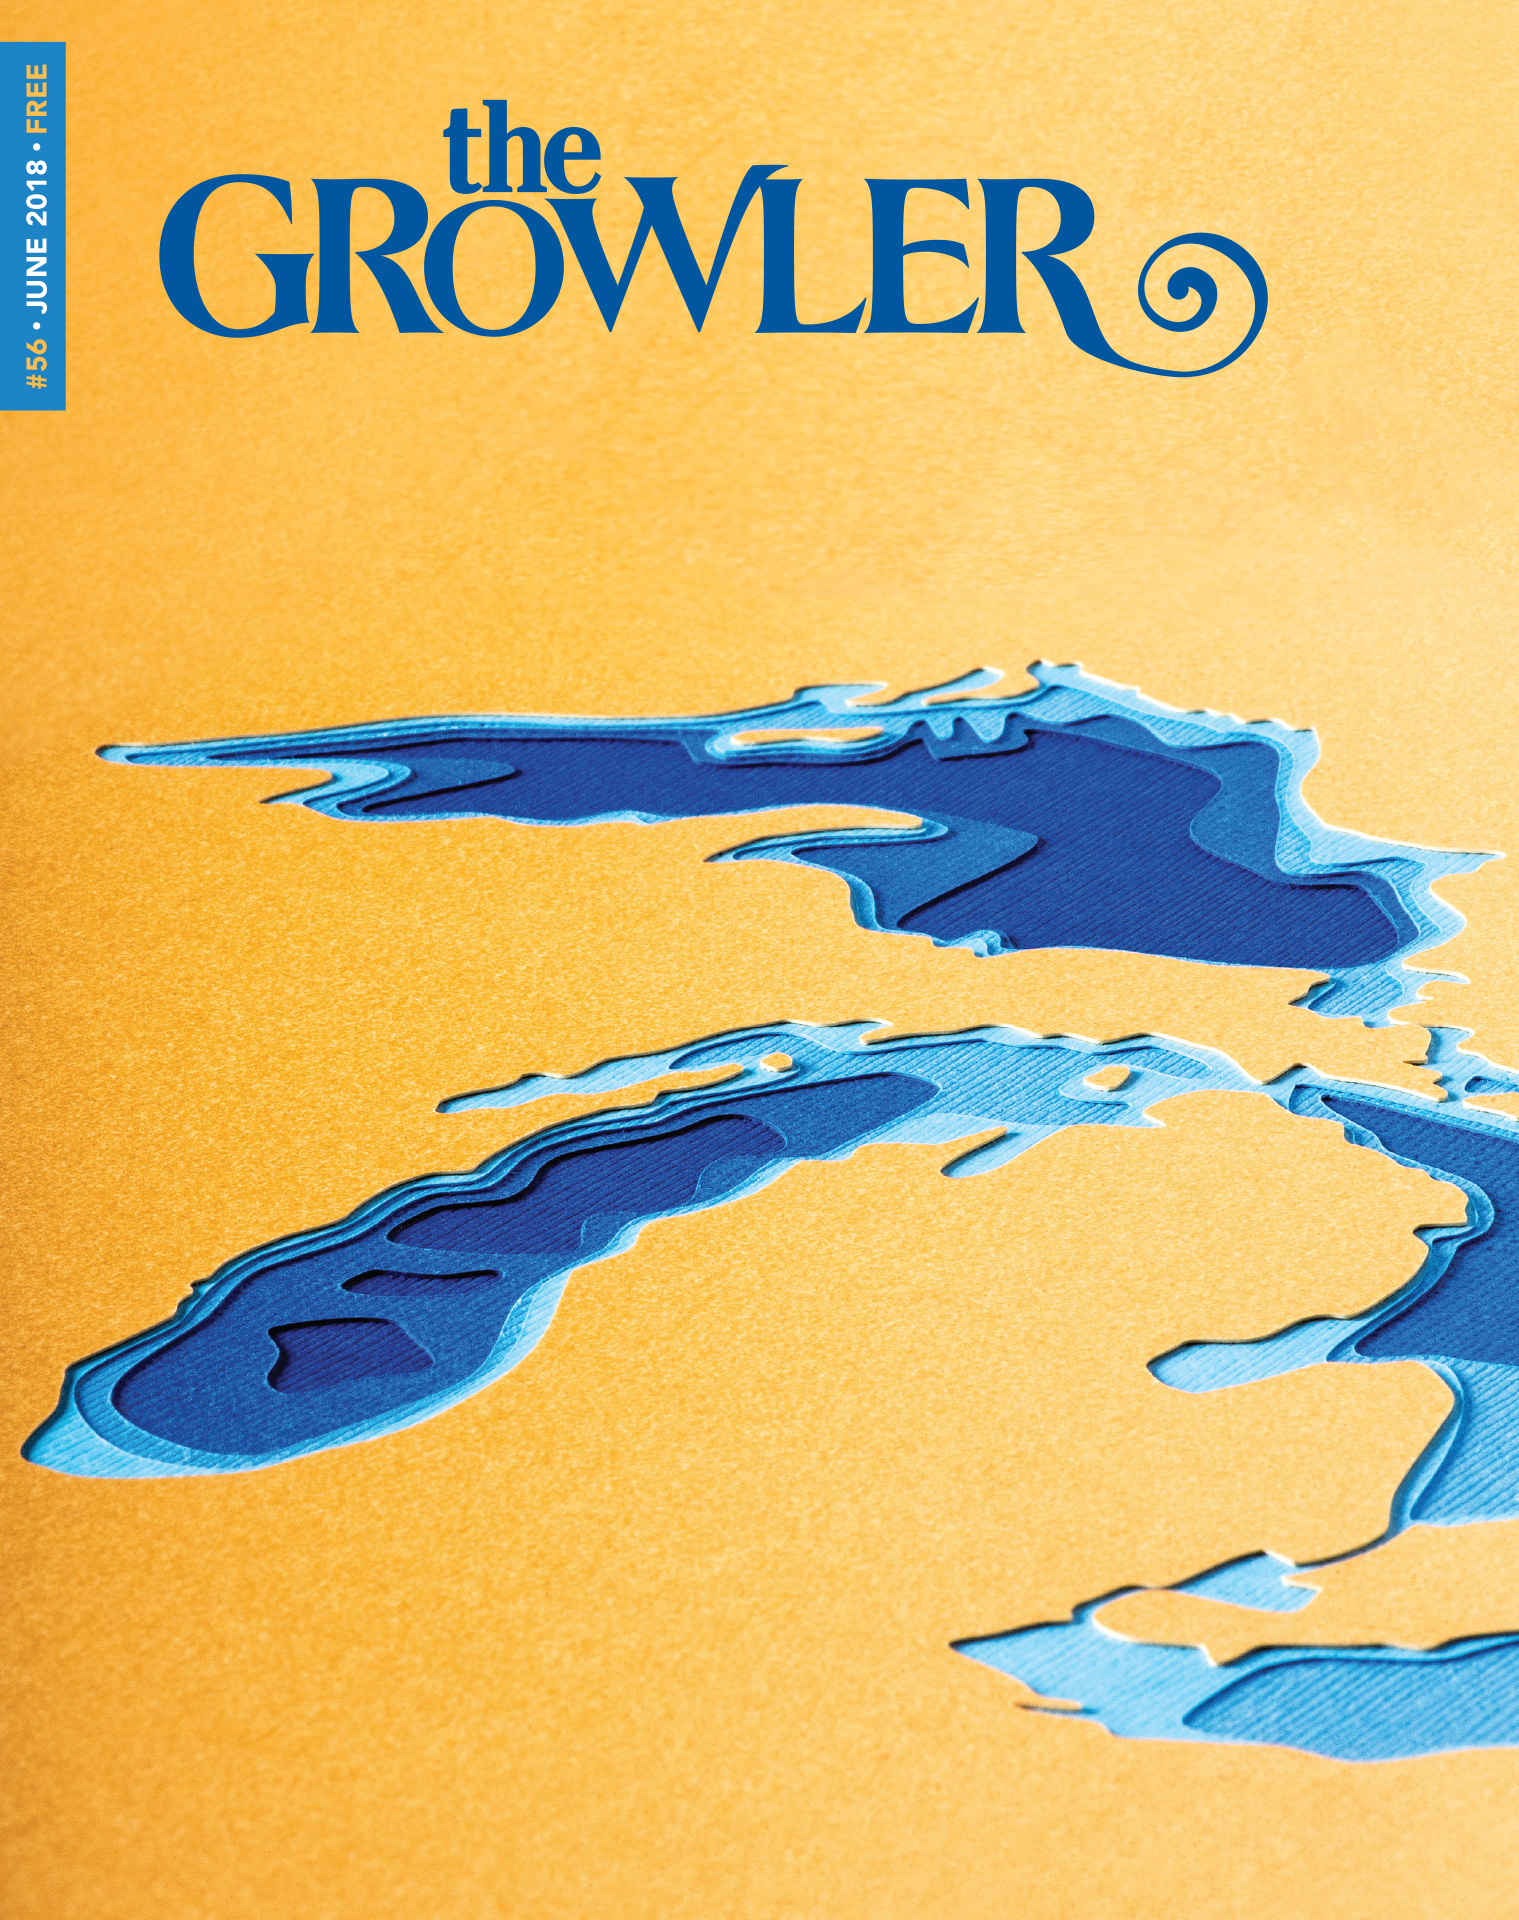 The Growler Issue 56 cover art // Art by Marnie Karger